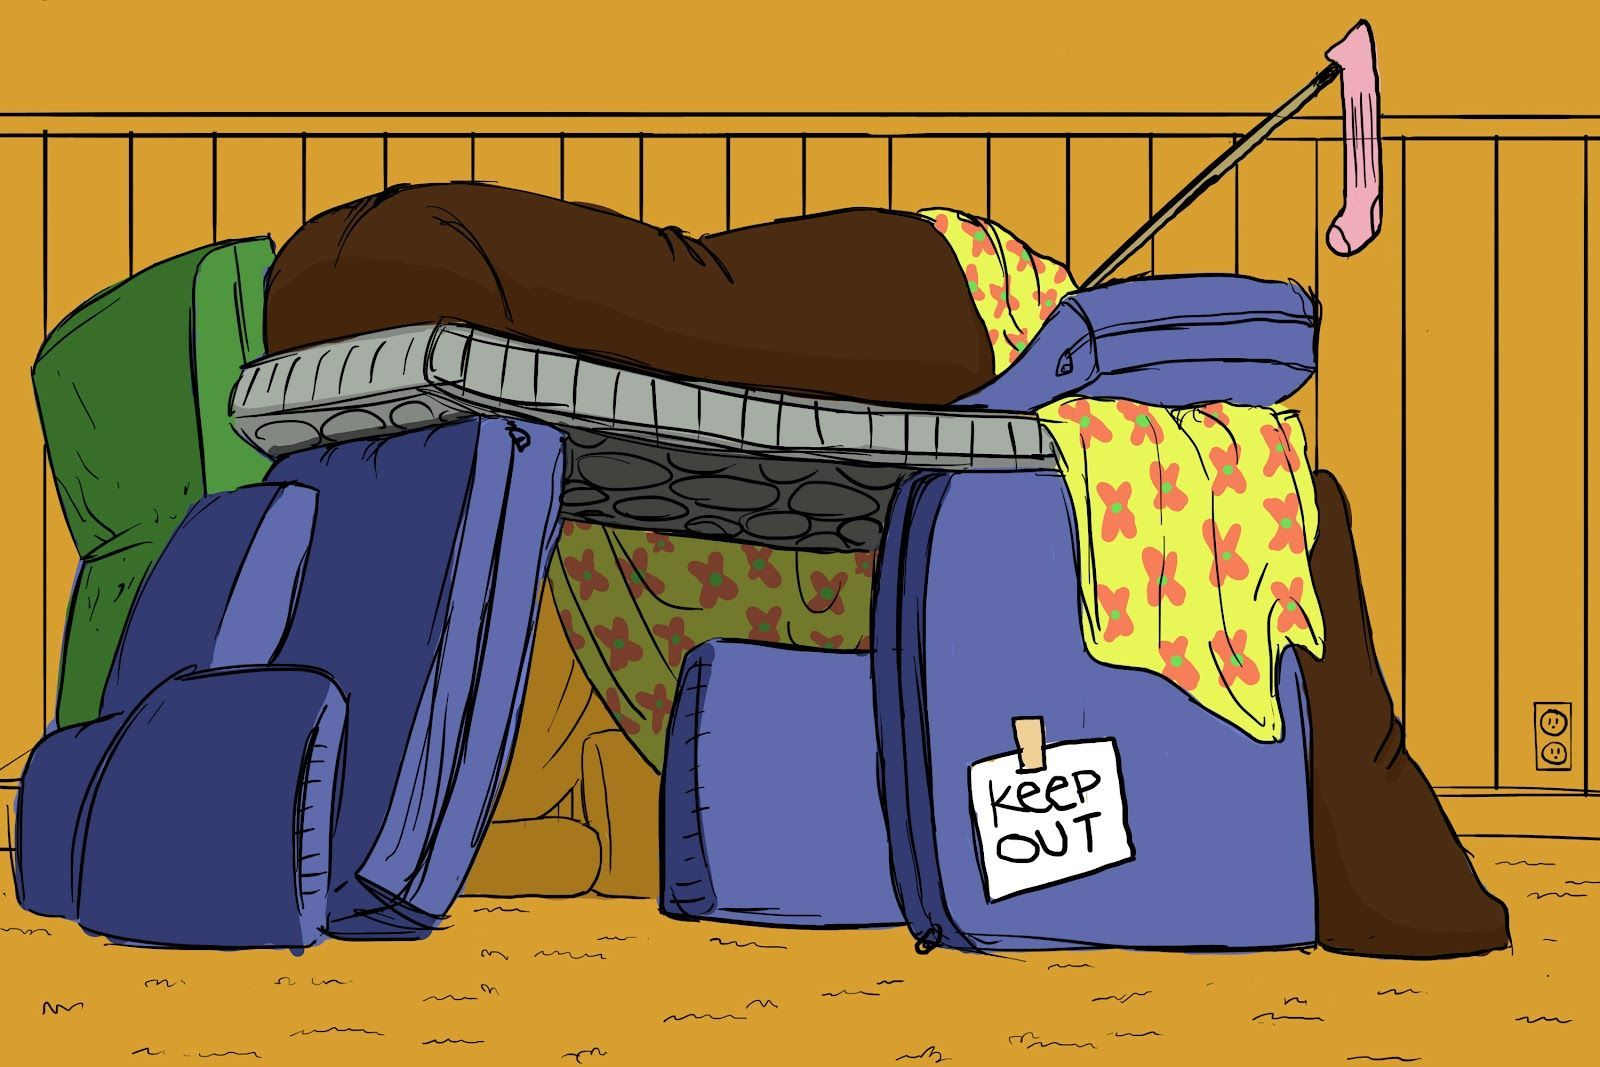 Blanket fort clipart image freeuse library Blanket fort clipart 7 » Clipart Portal image freeuse library